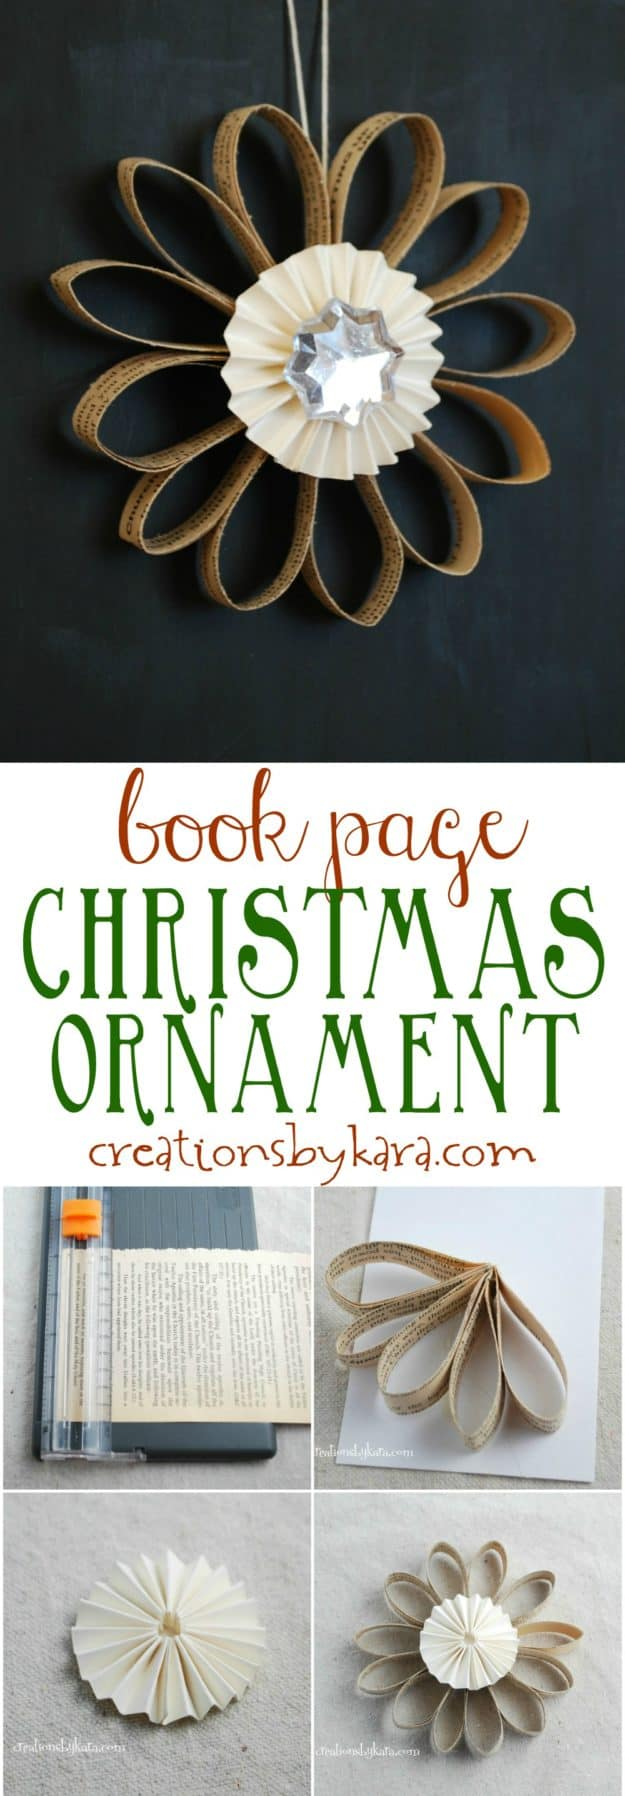 Book Page Christmas Ornament - whip up a whole set of these vintage tree ornaments in an afternoon. They look so pretty on the Christmas tree!